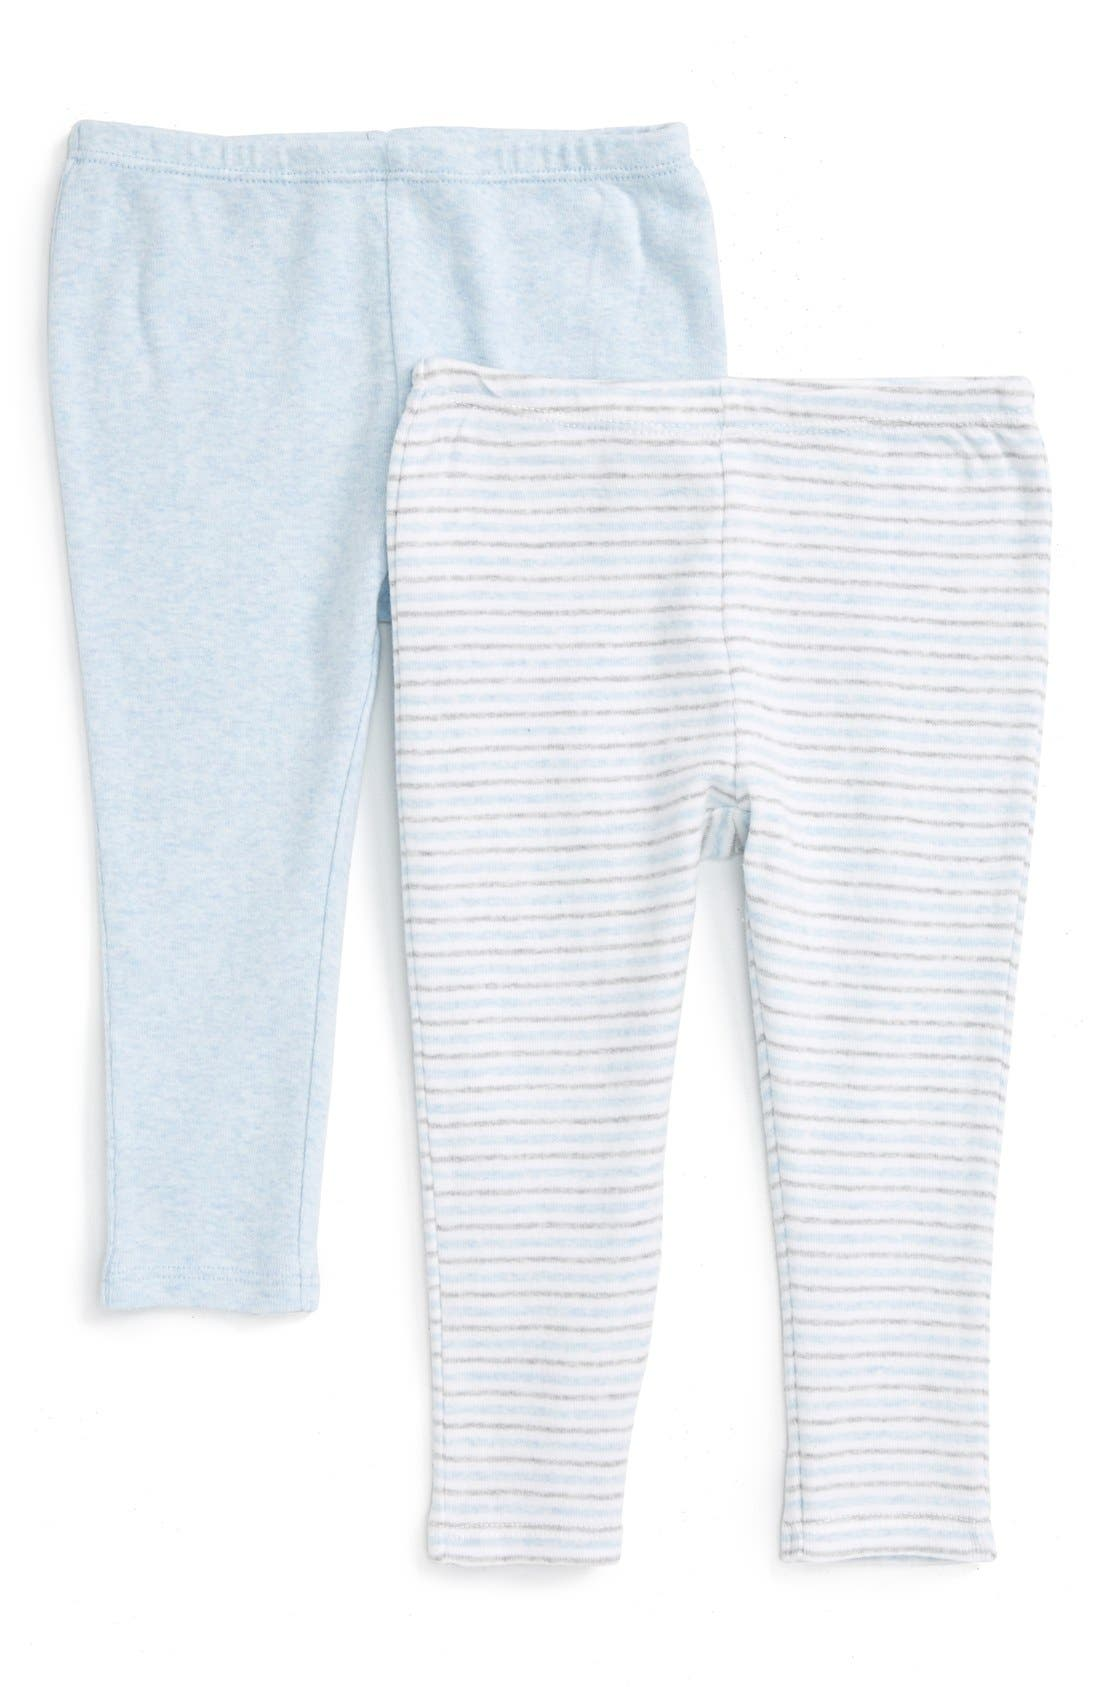 Infant Nordstrom Baby 2-Pack Leggings